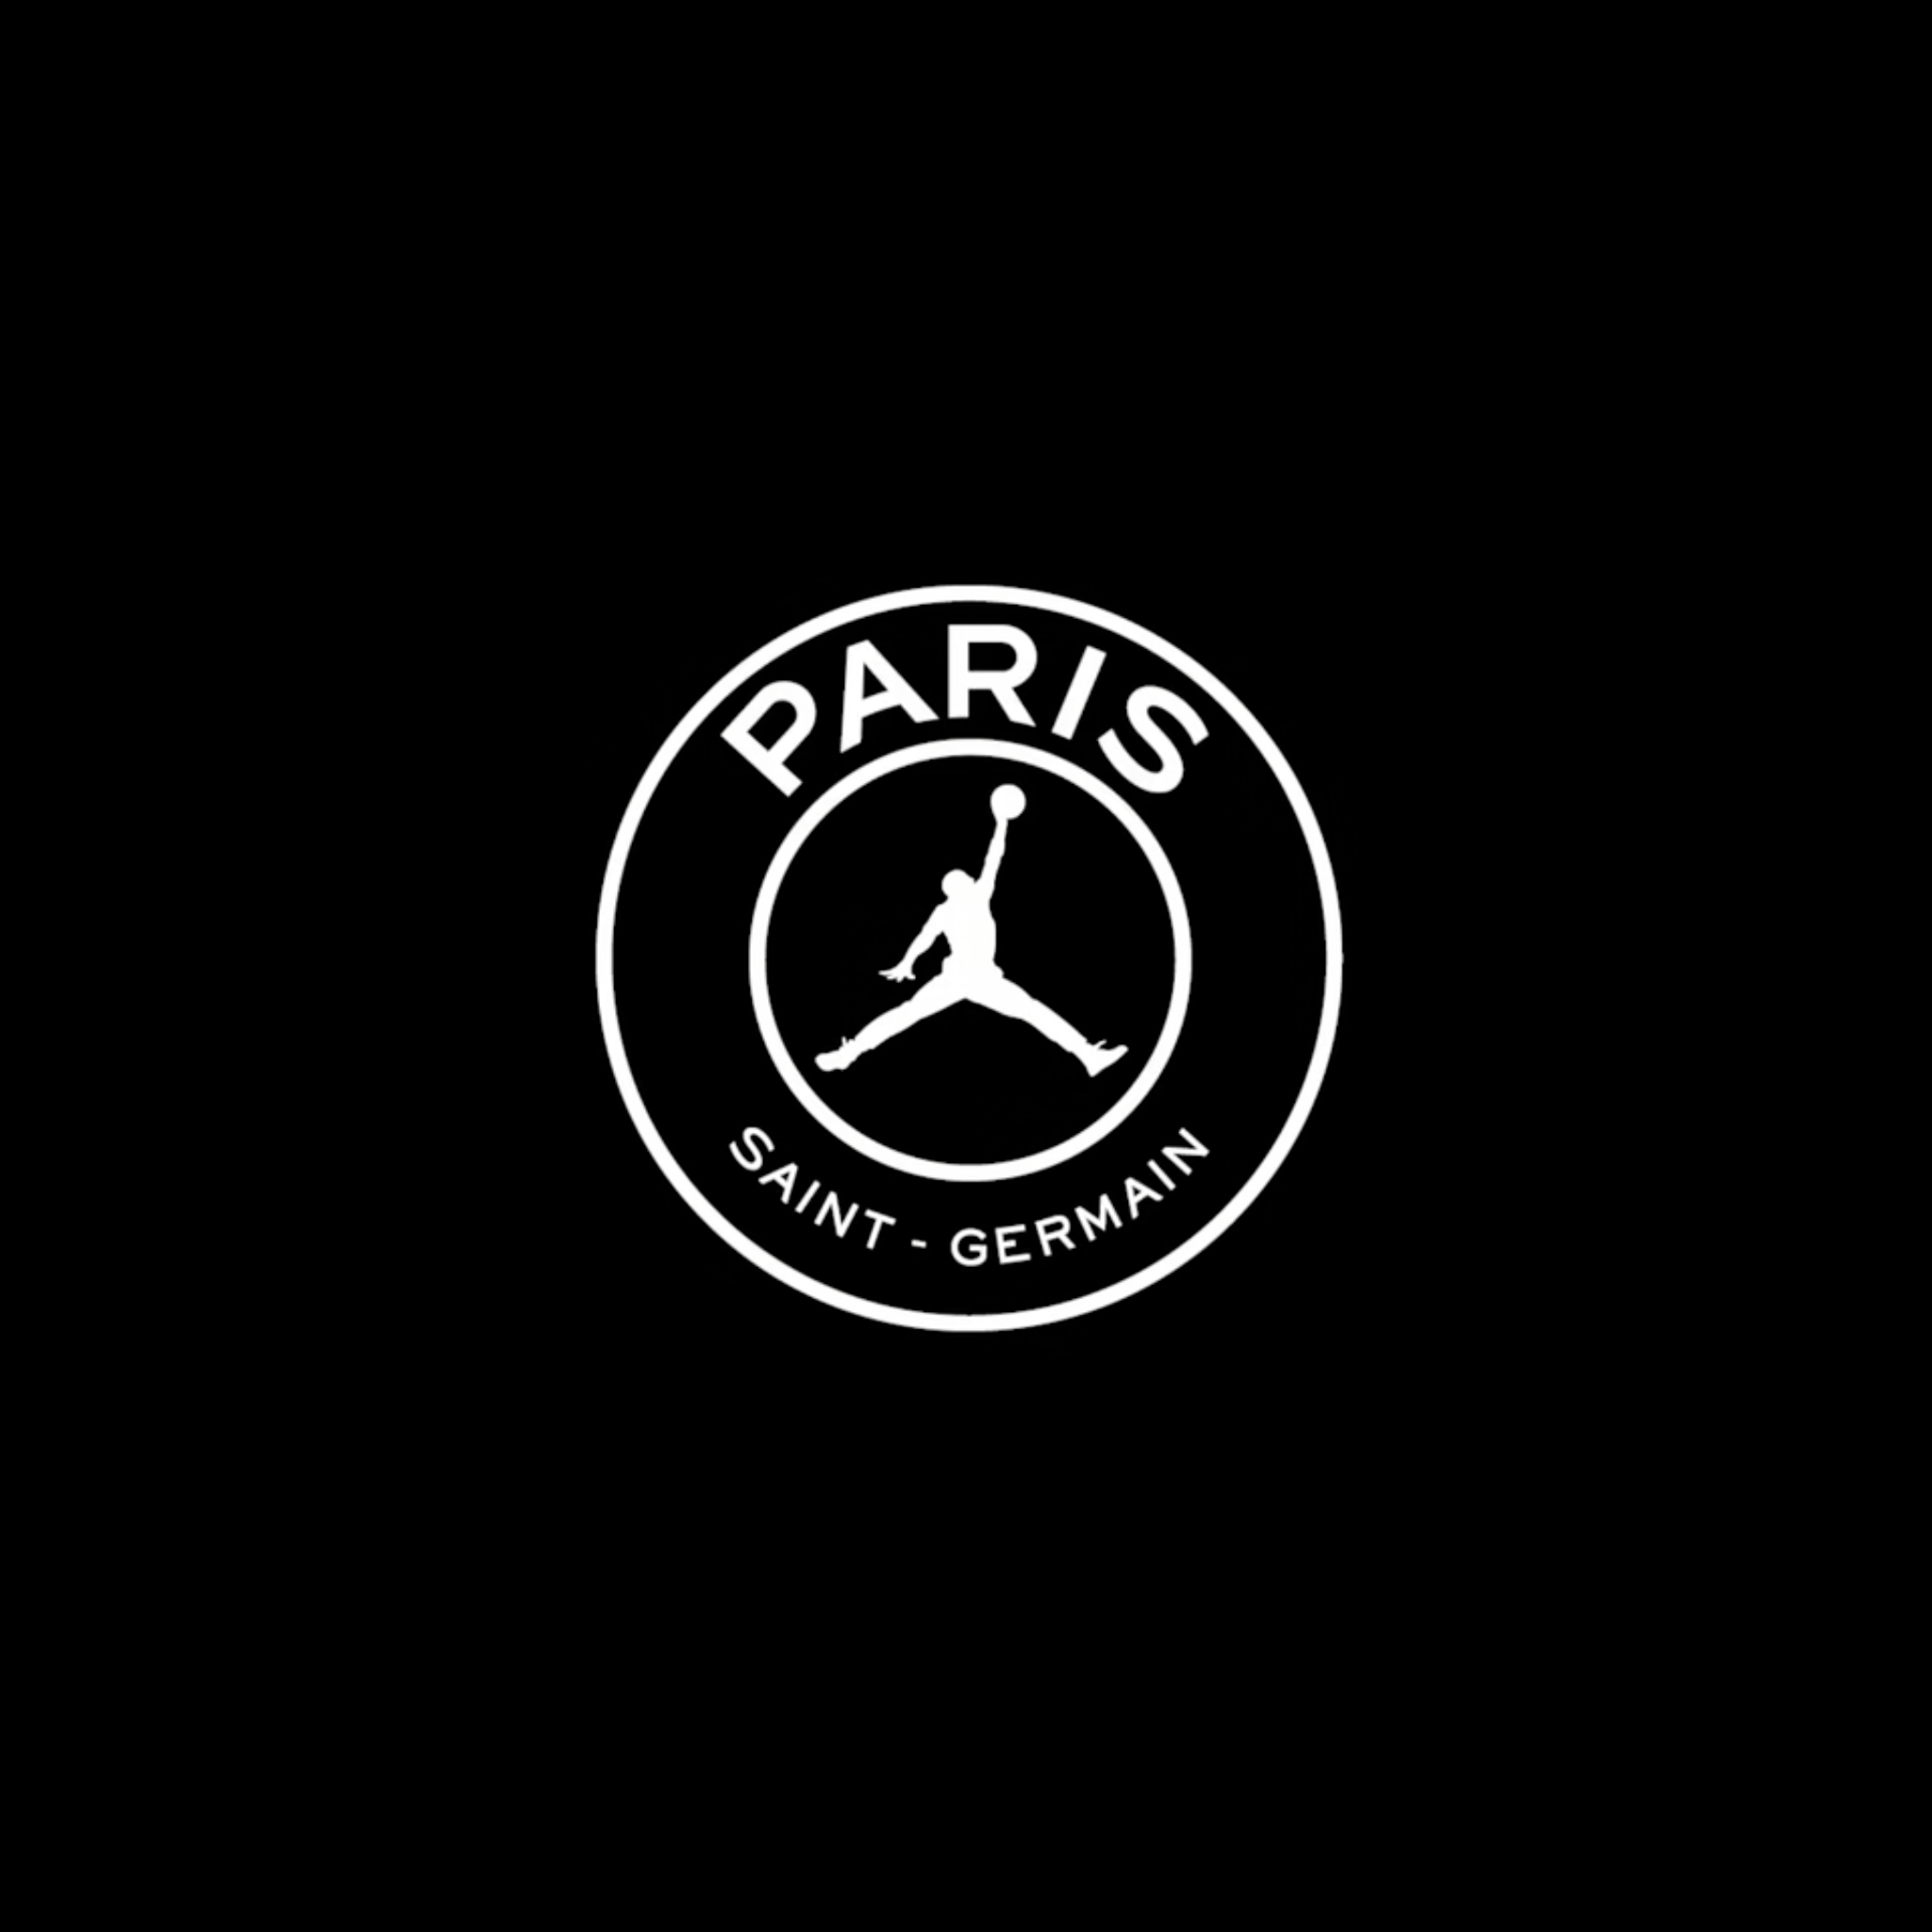 JORDAN BRAND | PARIS SAINT-GERMAIN